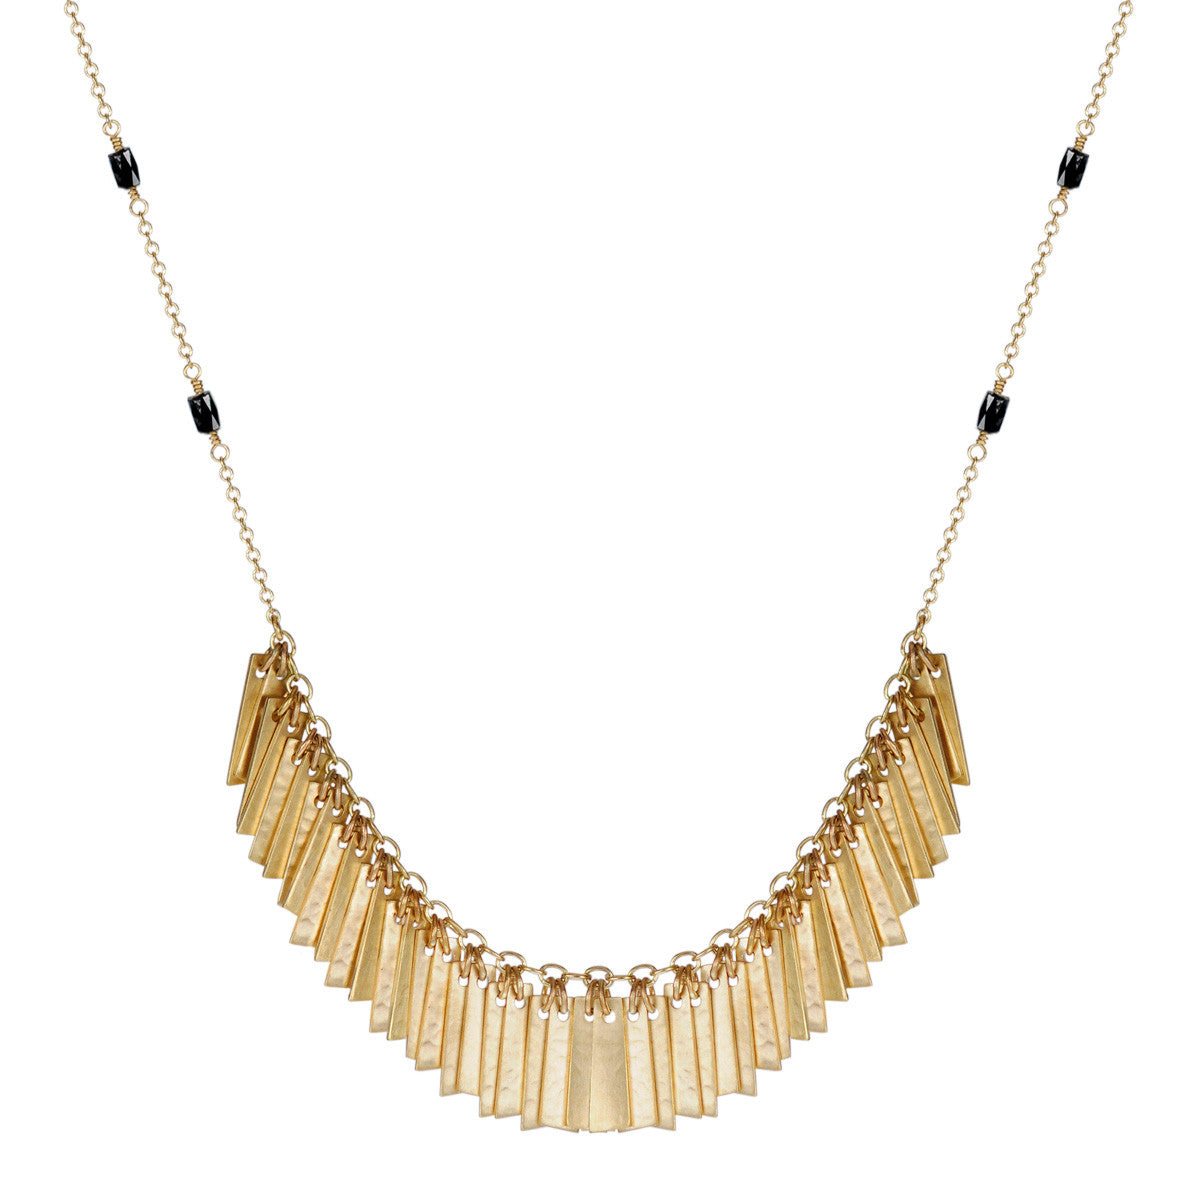 18K Gold Curtain Pendant on Black Diamond Beaded Chain